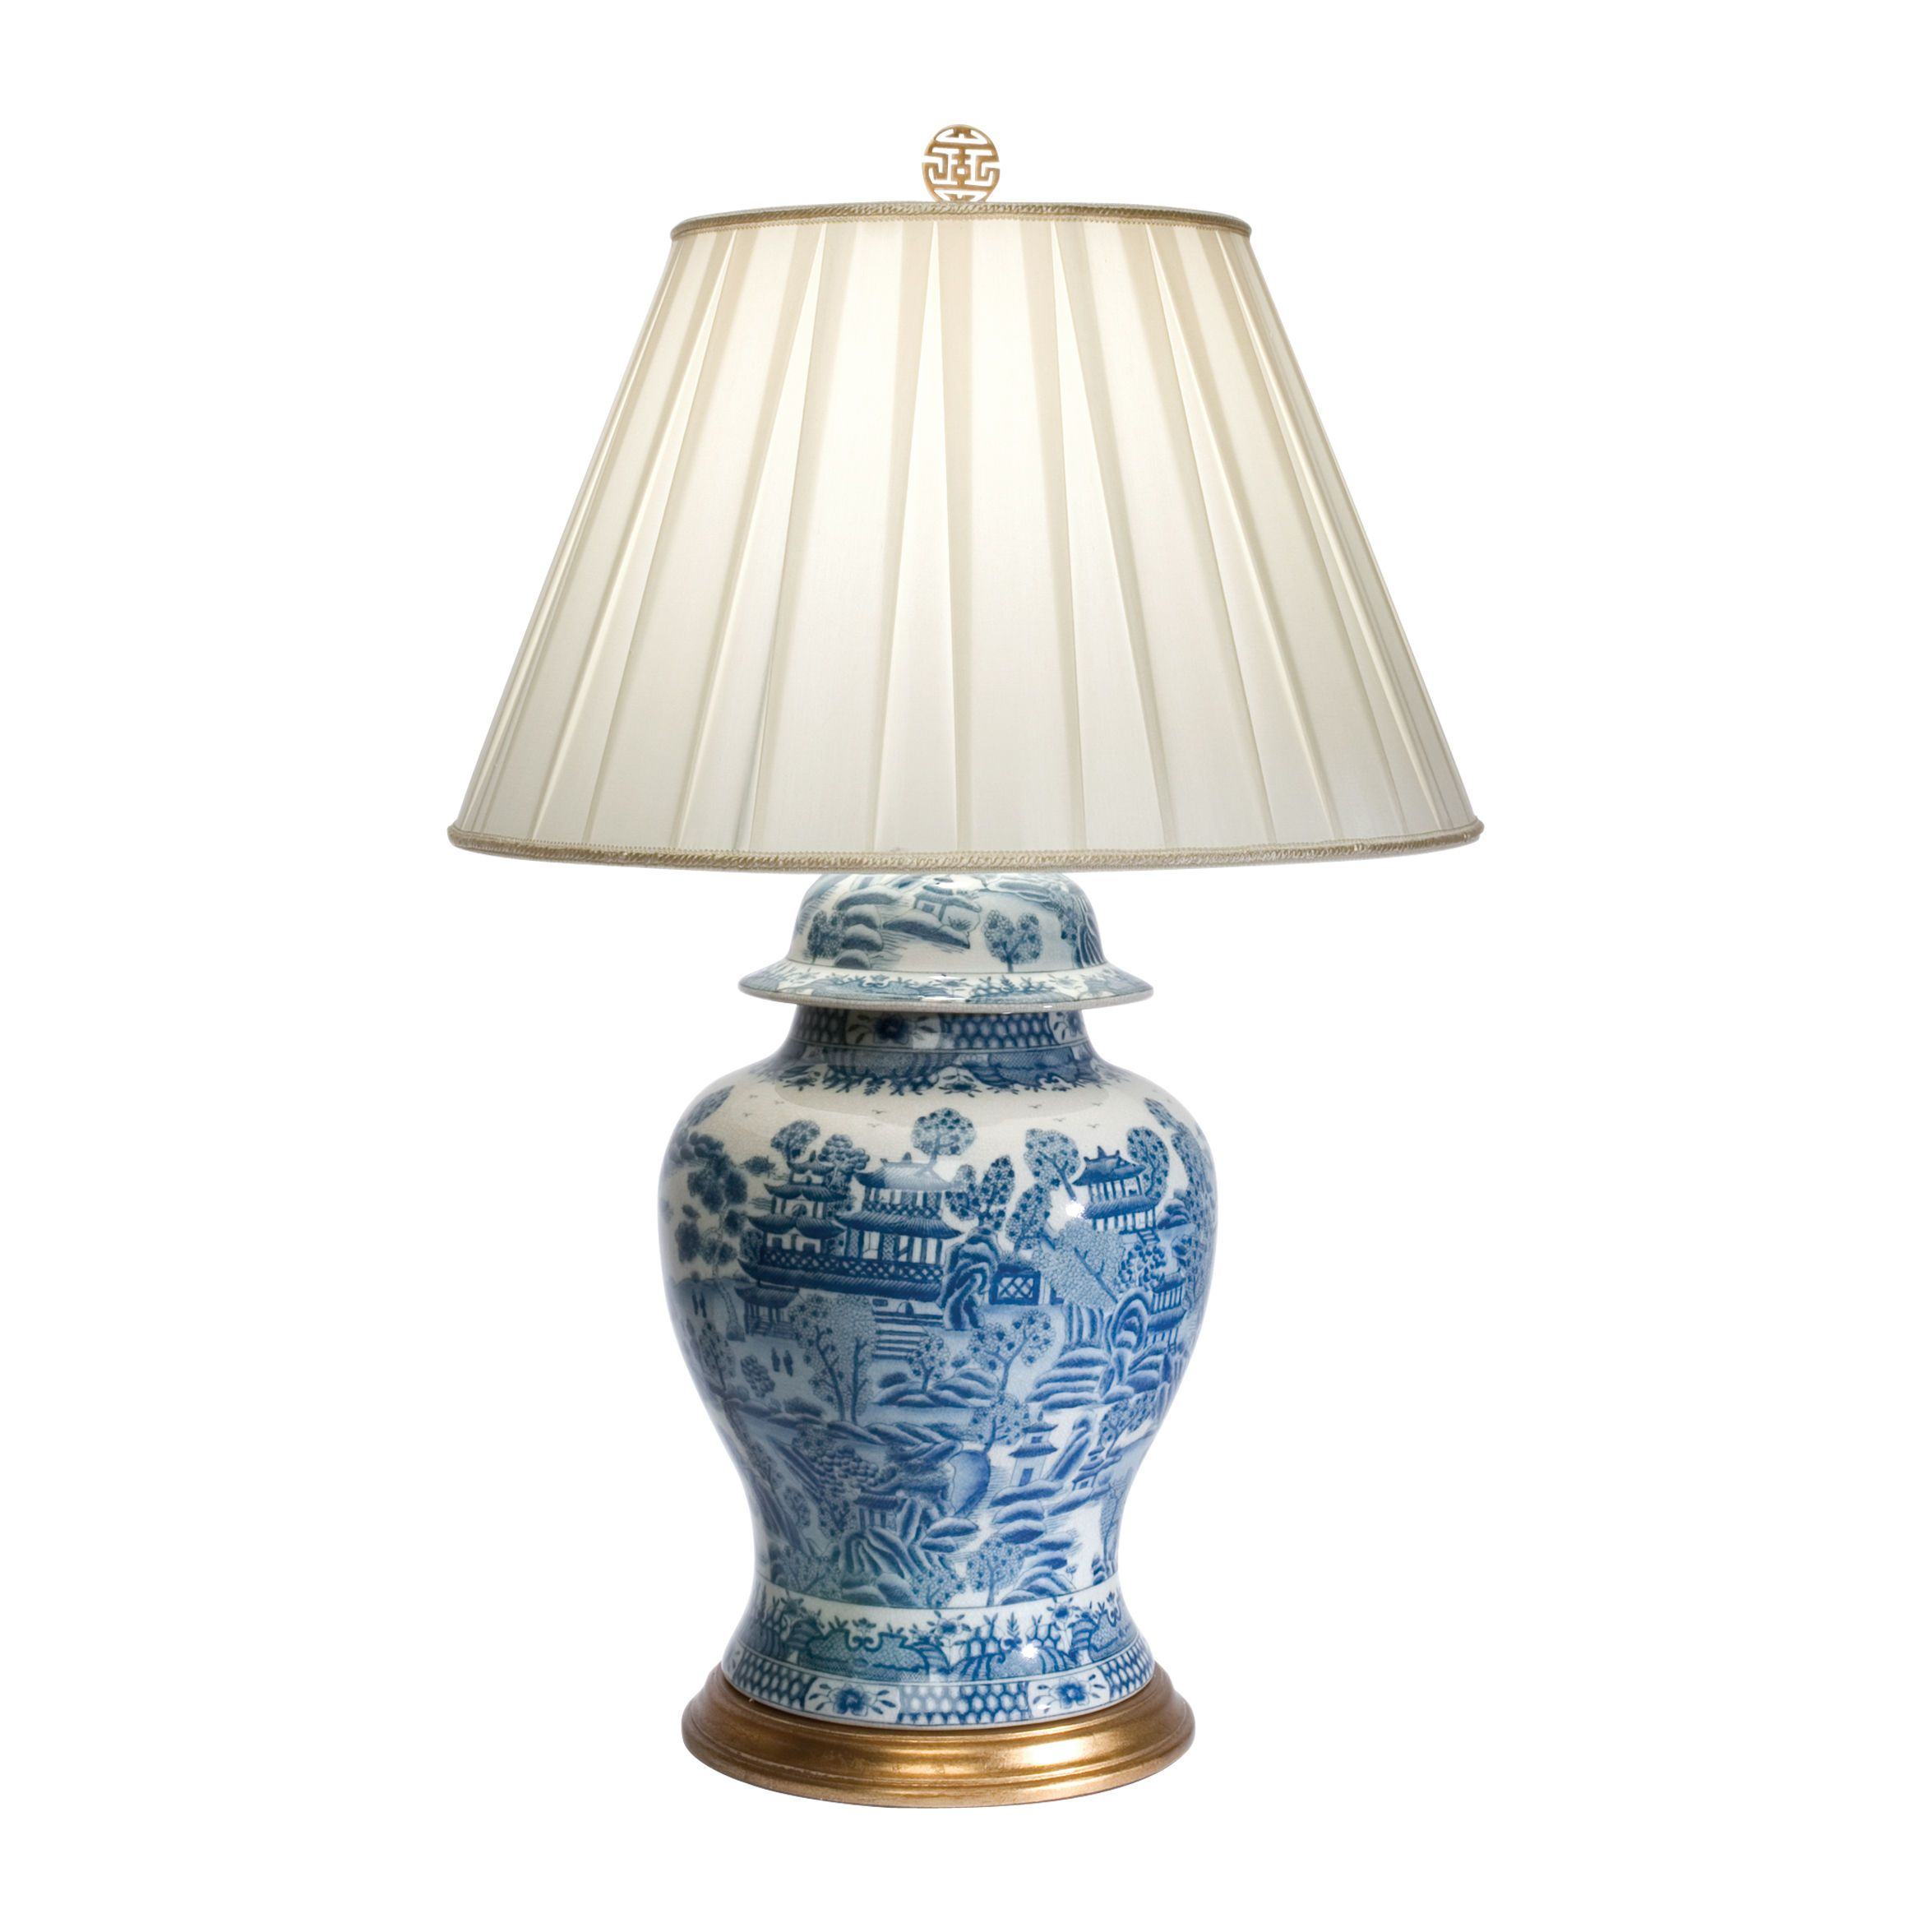 Classic Ginger Jar Table Lamp - Ethan Allen US | Favorite ...